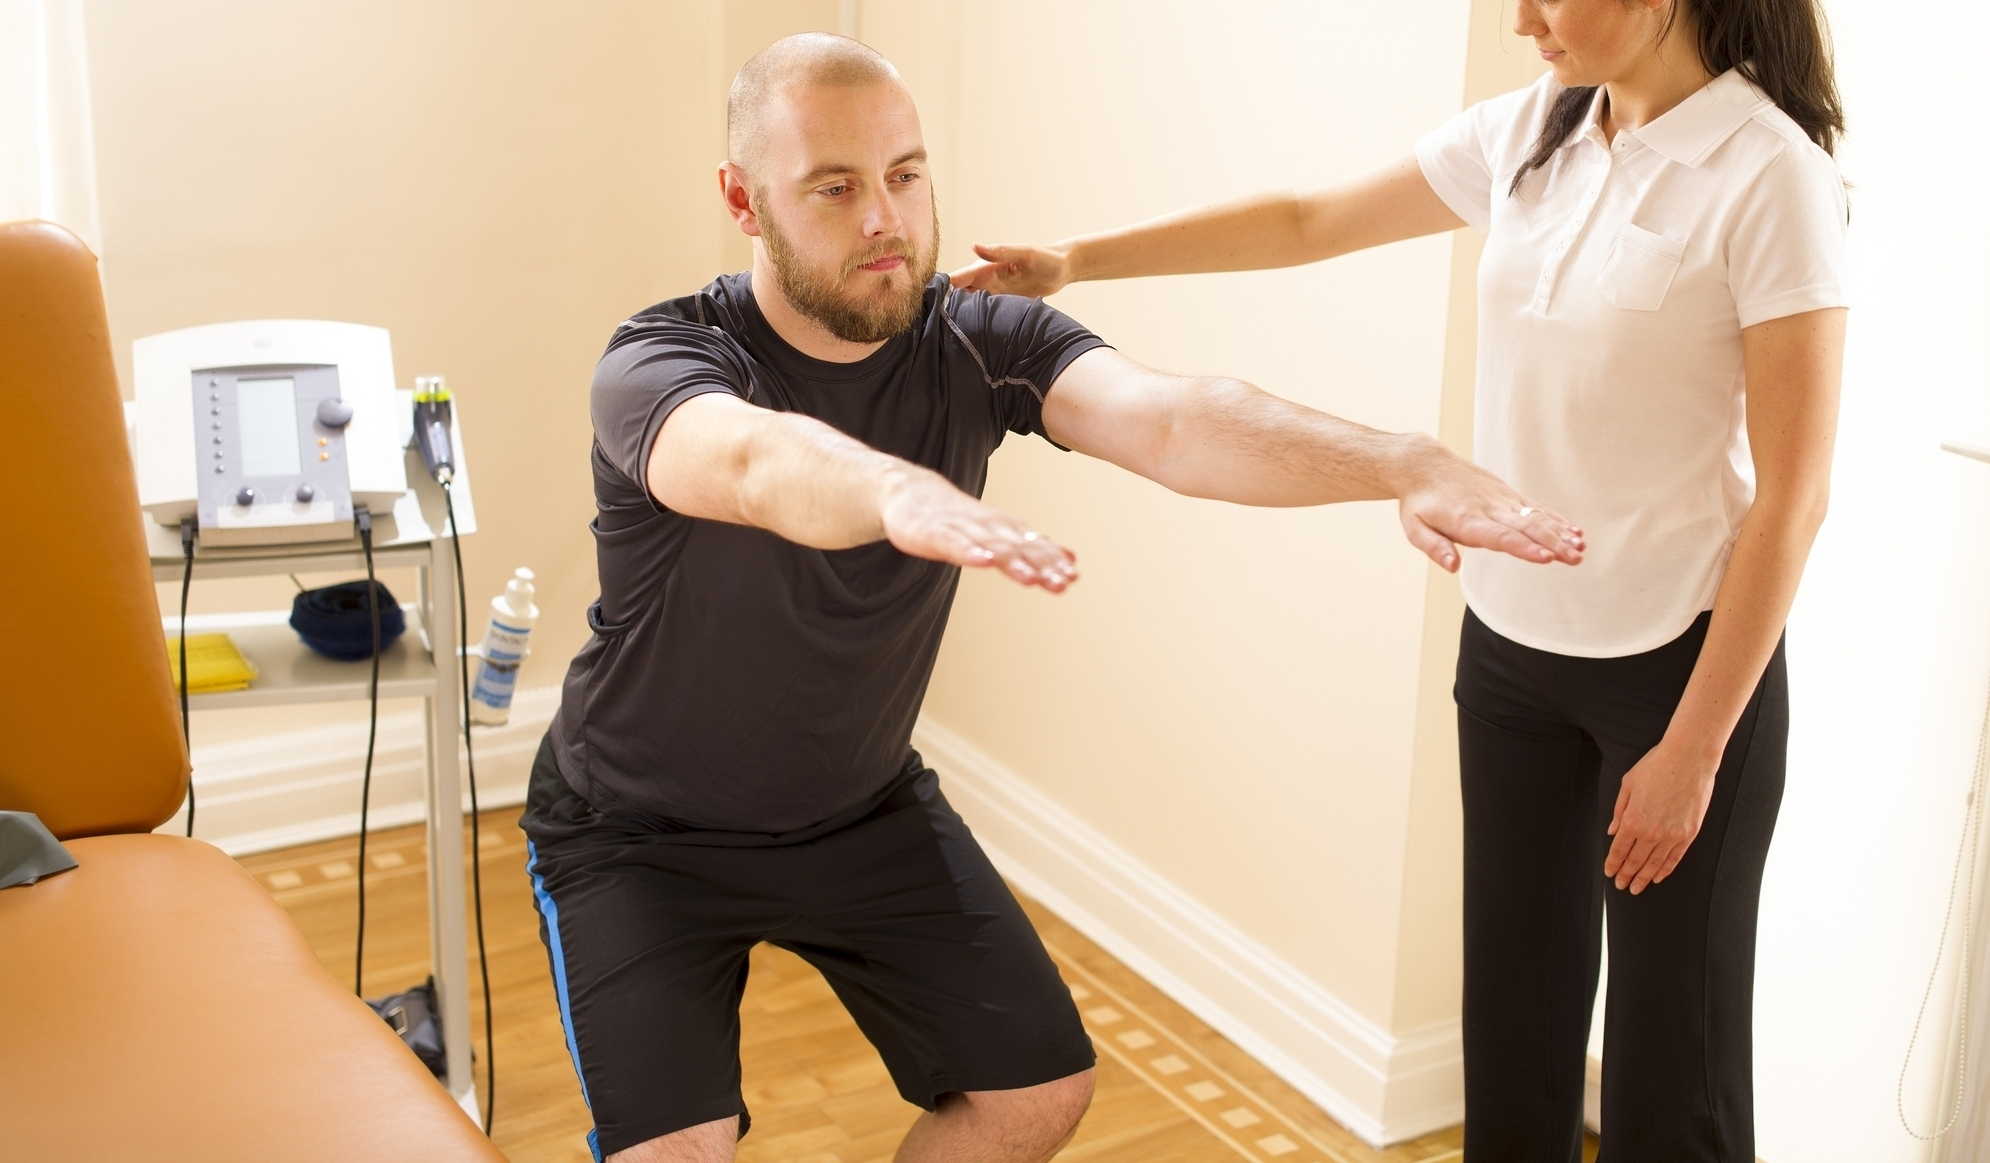 Treatment... - The essence of our practice is individual attention with an holistic approach and one-on-one treatment with the therapist's hands guiding you through the movements to recovery. The therapist will use his hands applying gentle manual techniques to different parts of your body (not necessarily where you feel the pain) to facilitate tissue changes such as releasing tender points, and decreasing muscle and tissue tension. You will also participate in active exercises to improve strength, flexibility, balance and coordination. Modalities such as: electro stimulation, ultrasound, infrared, and hydrotherapy can be part of your treatment. Treatment interventions will be based on evaluation.